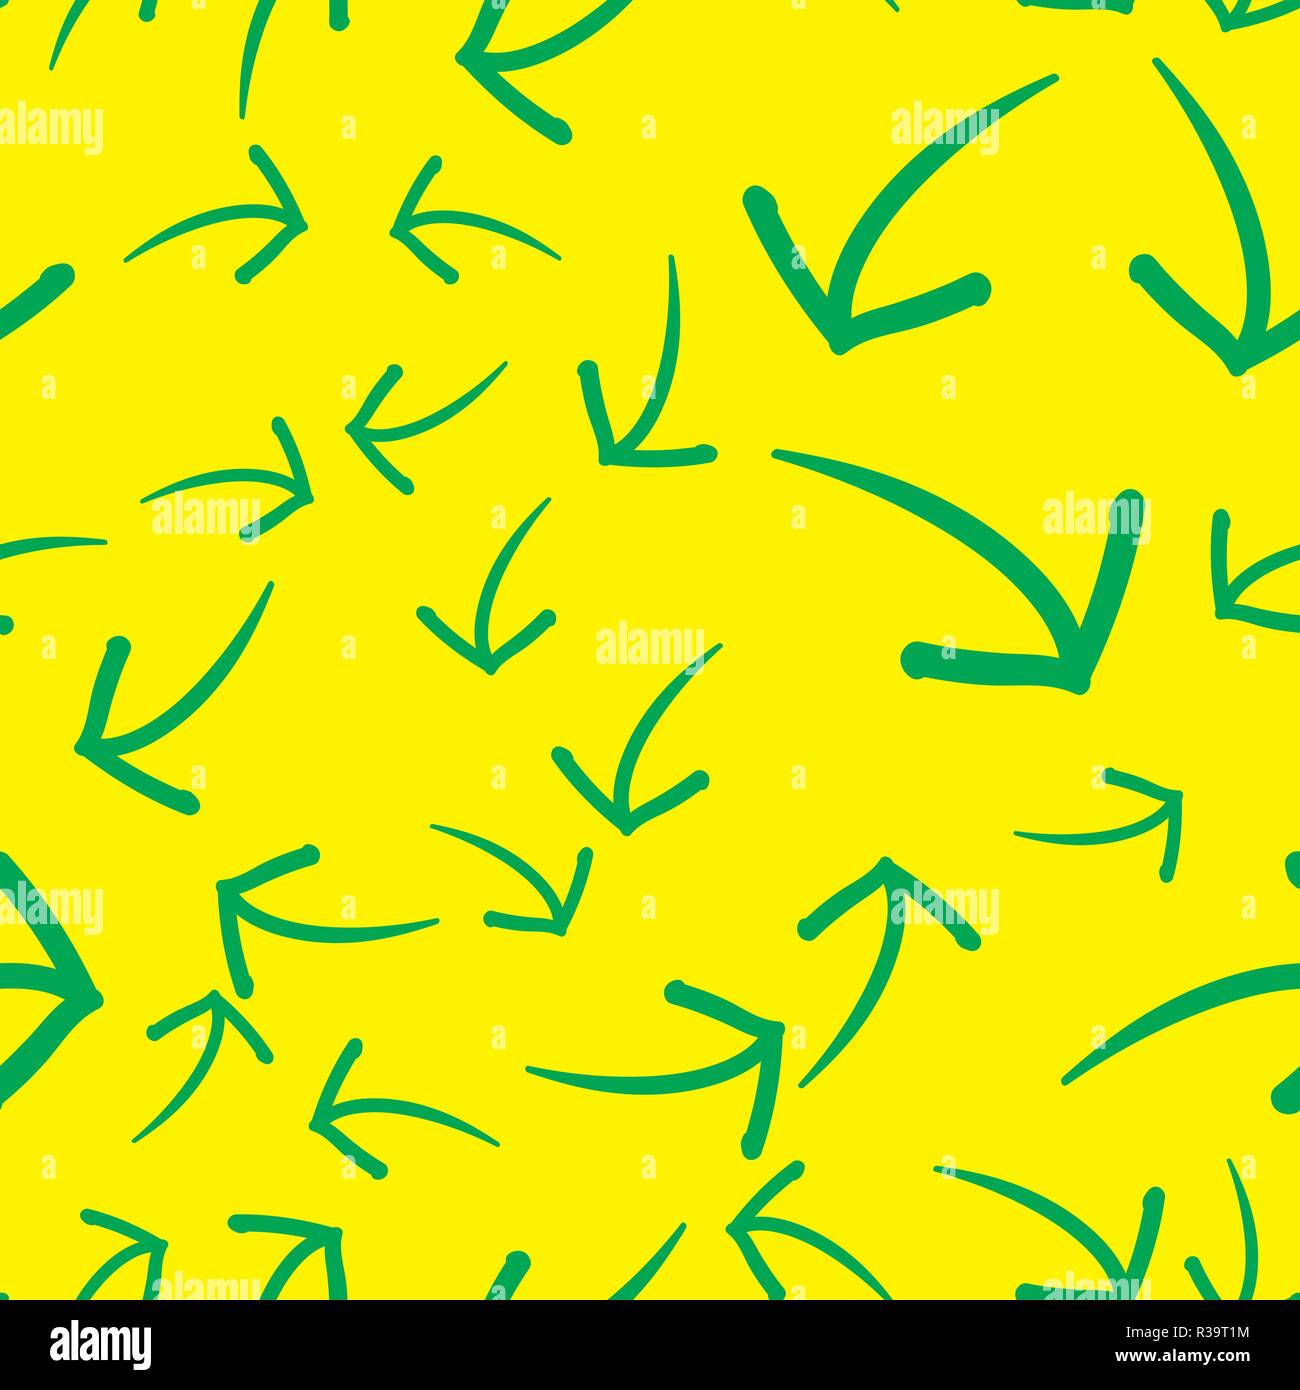 Seamless Background With Arrows Design Can Be Used For Wallpaper